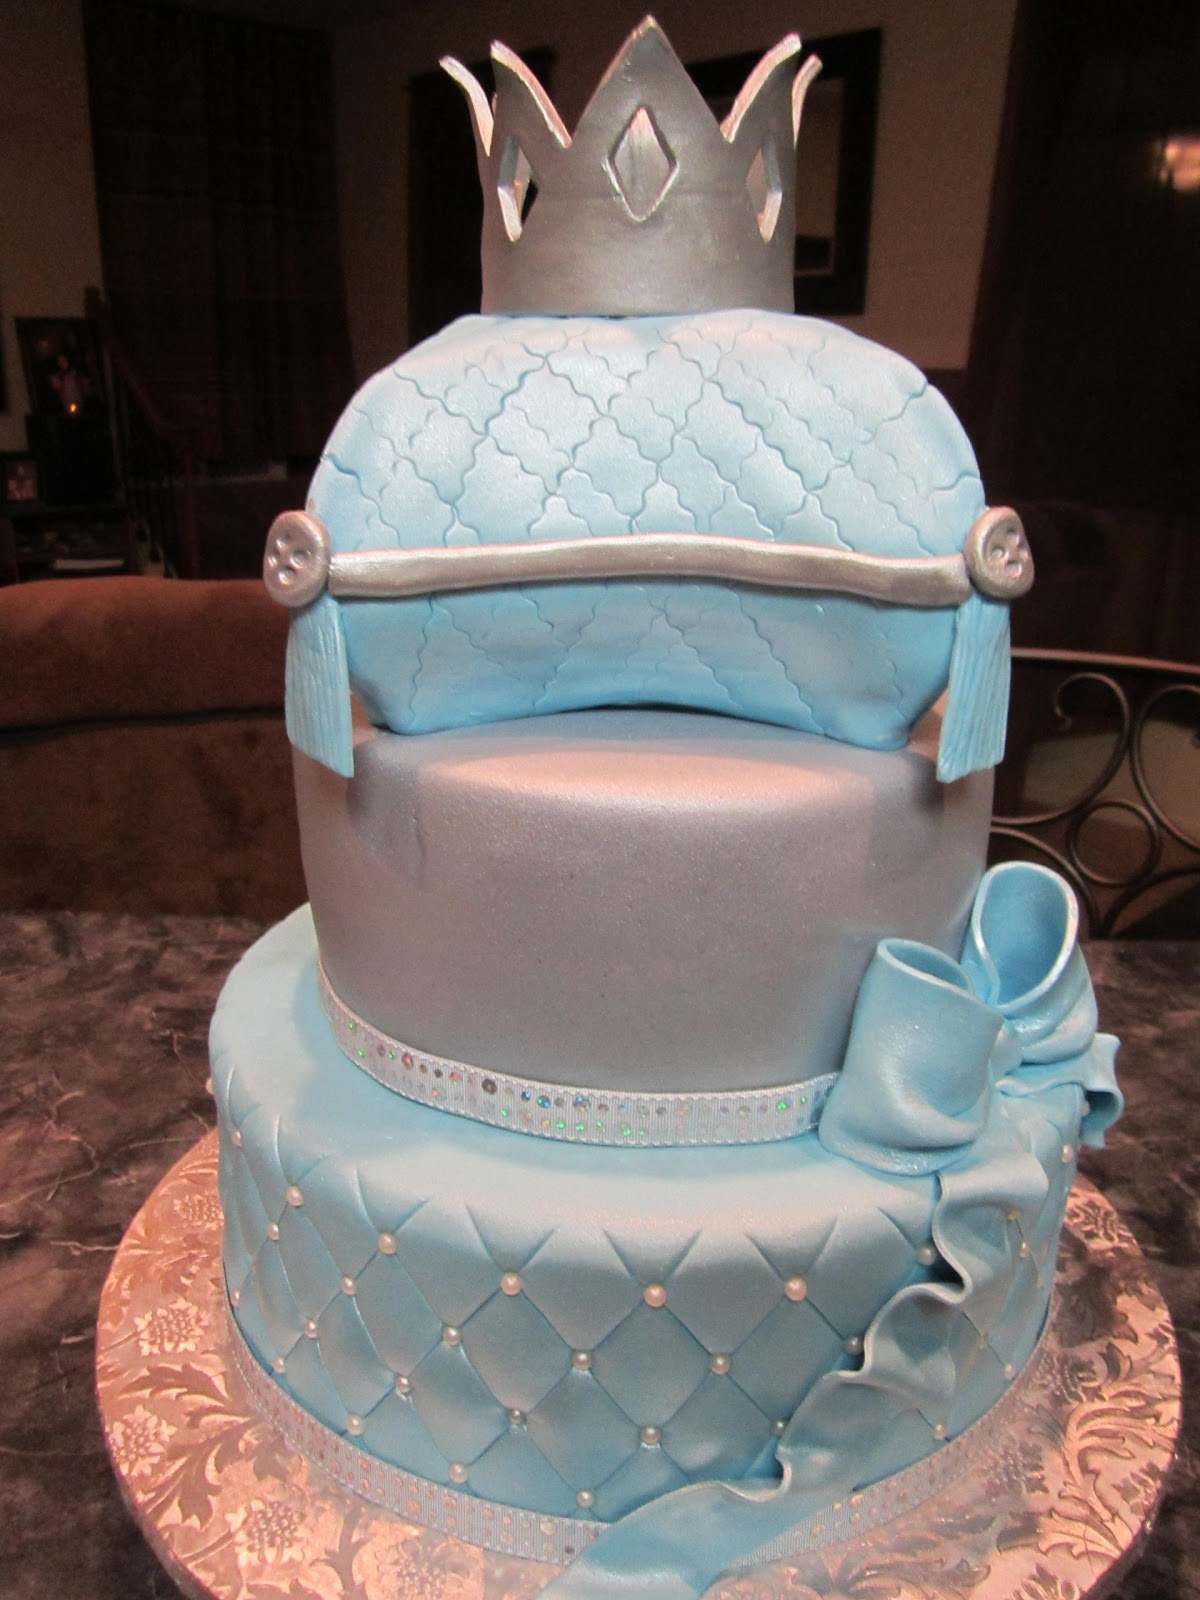 Little Prince Baby Shower Cake with Pillow and Crown